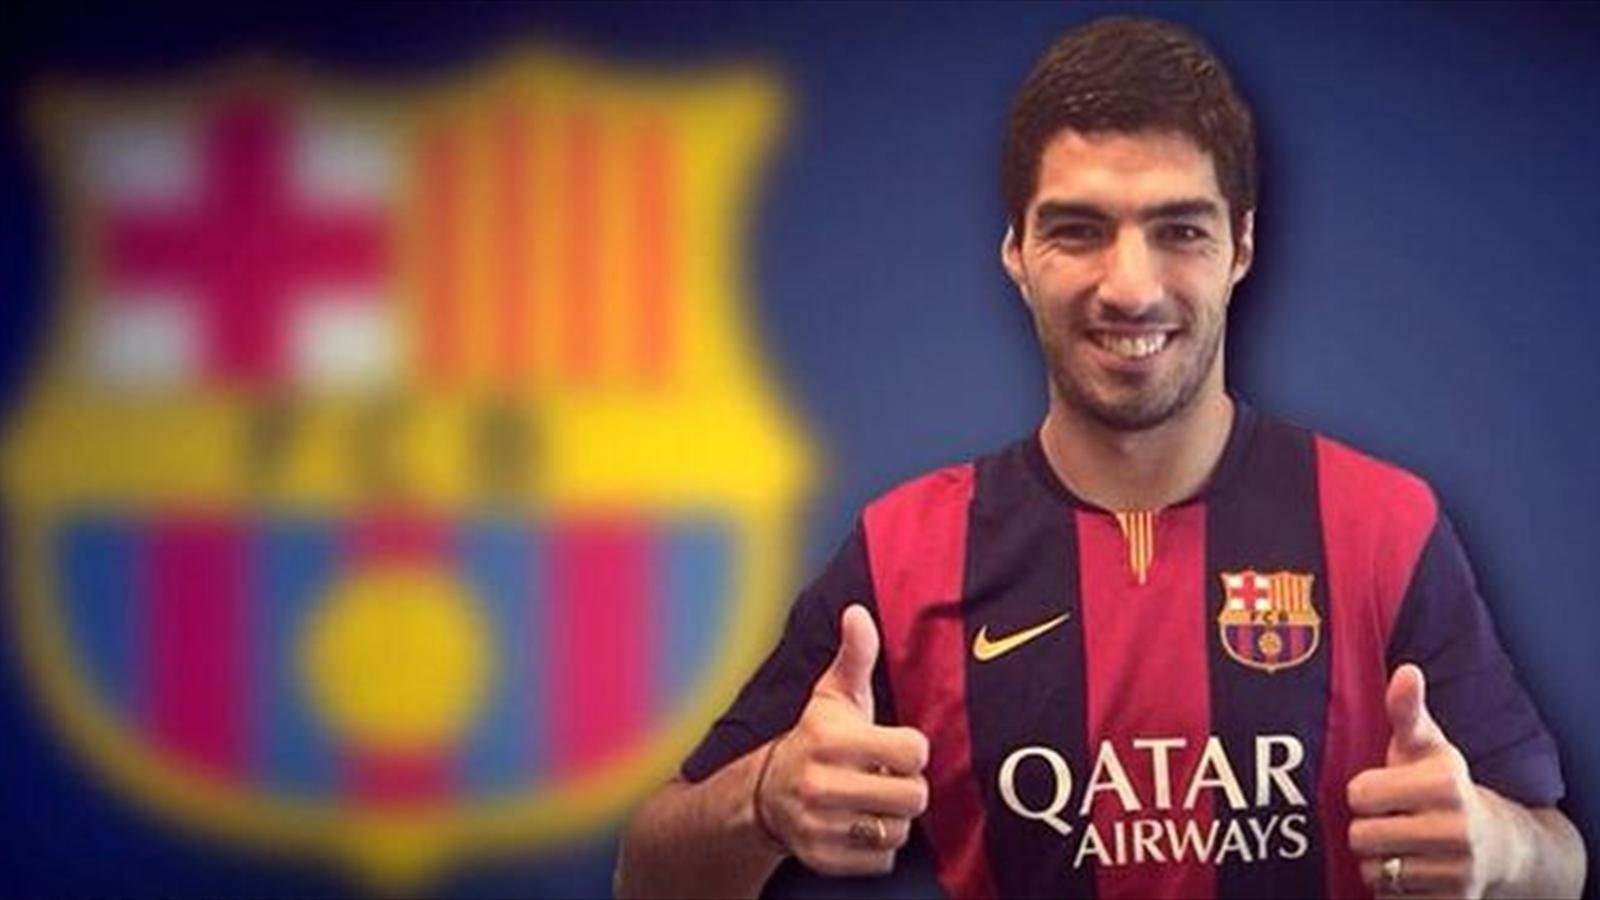 Barcelona released this picture of Luis Suarez in their colours